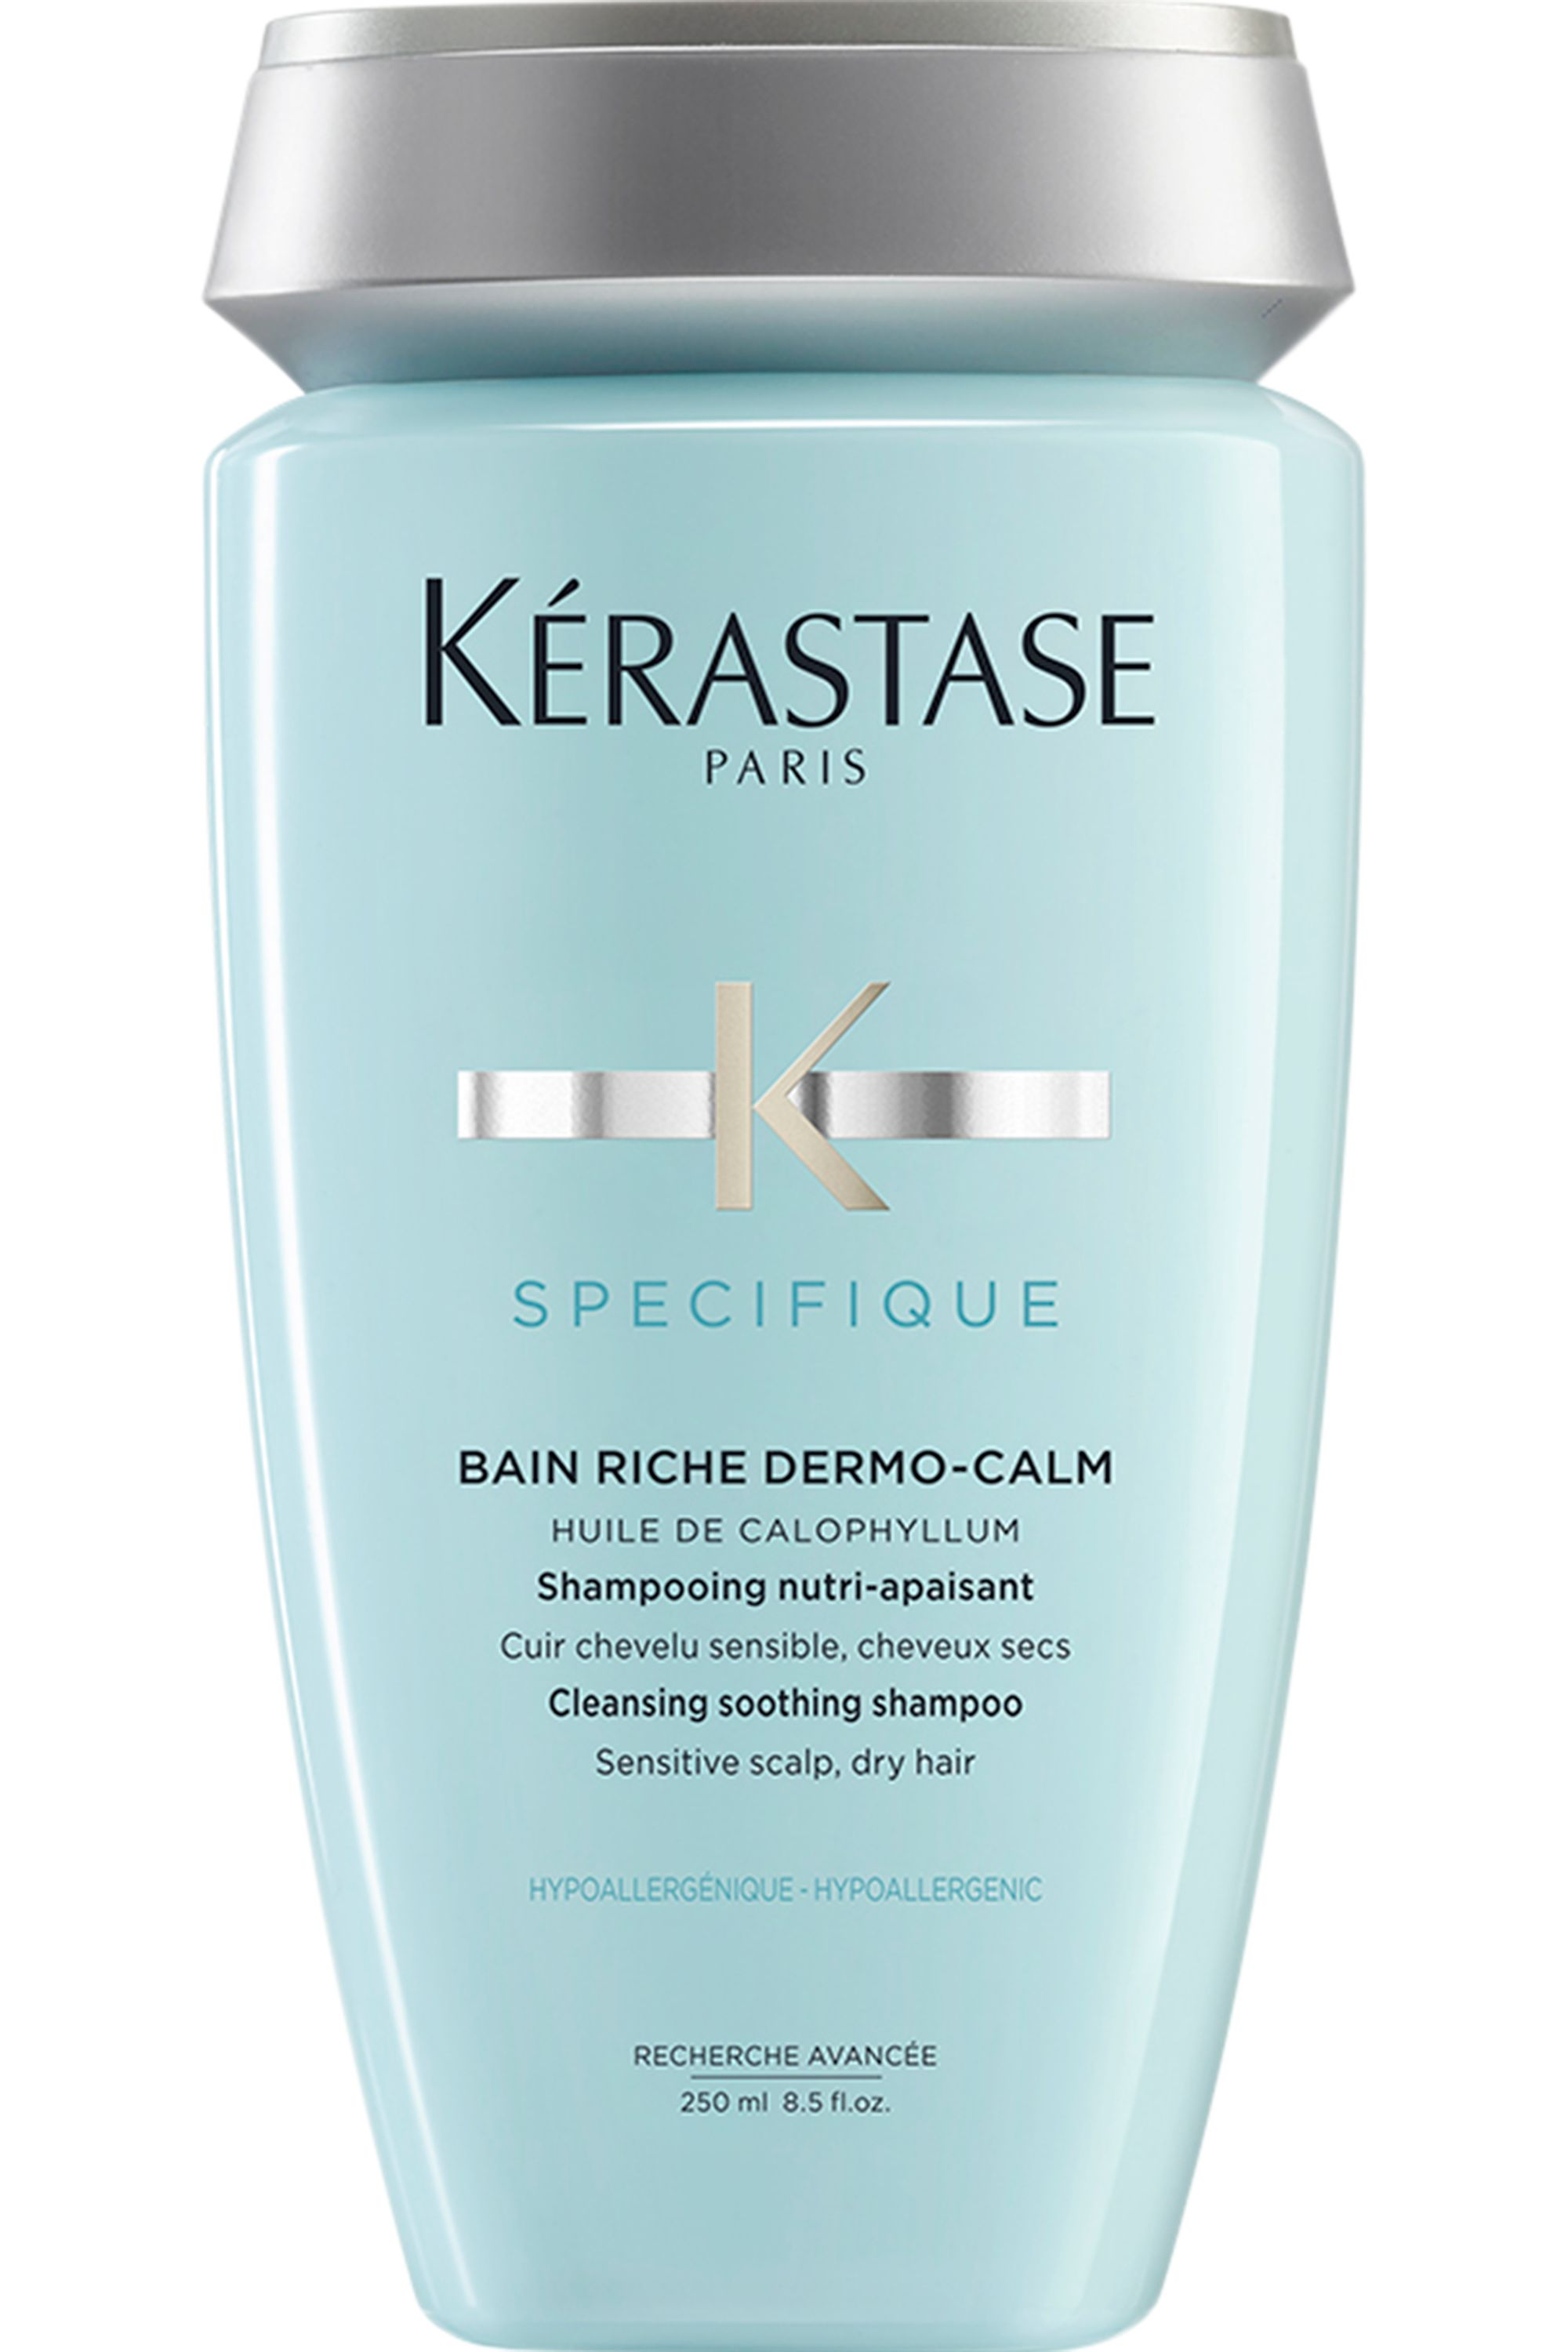 Blissim : Kérastase - Specifique Bain Riche Dermo-Calm - Specifique Bain Riche Dermo-Calm